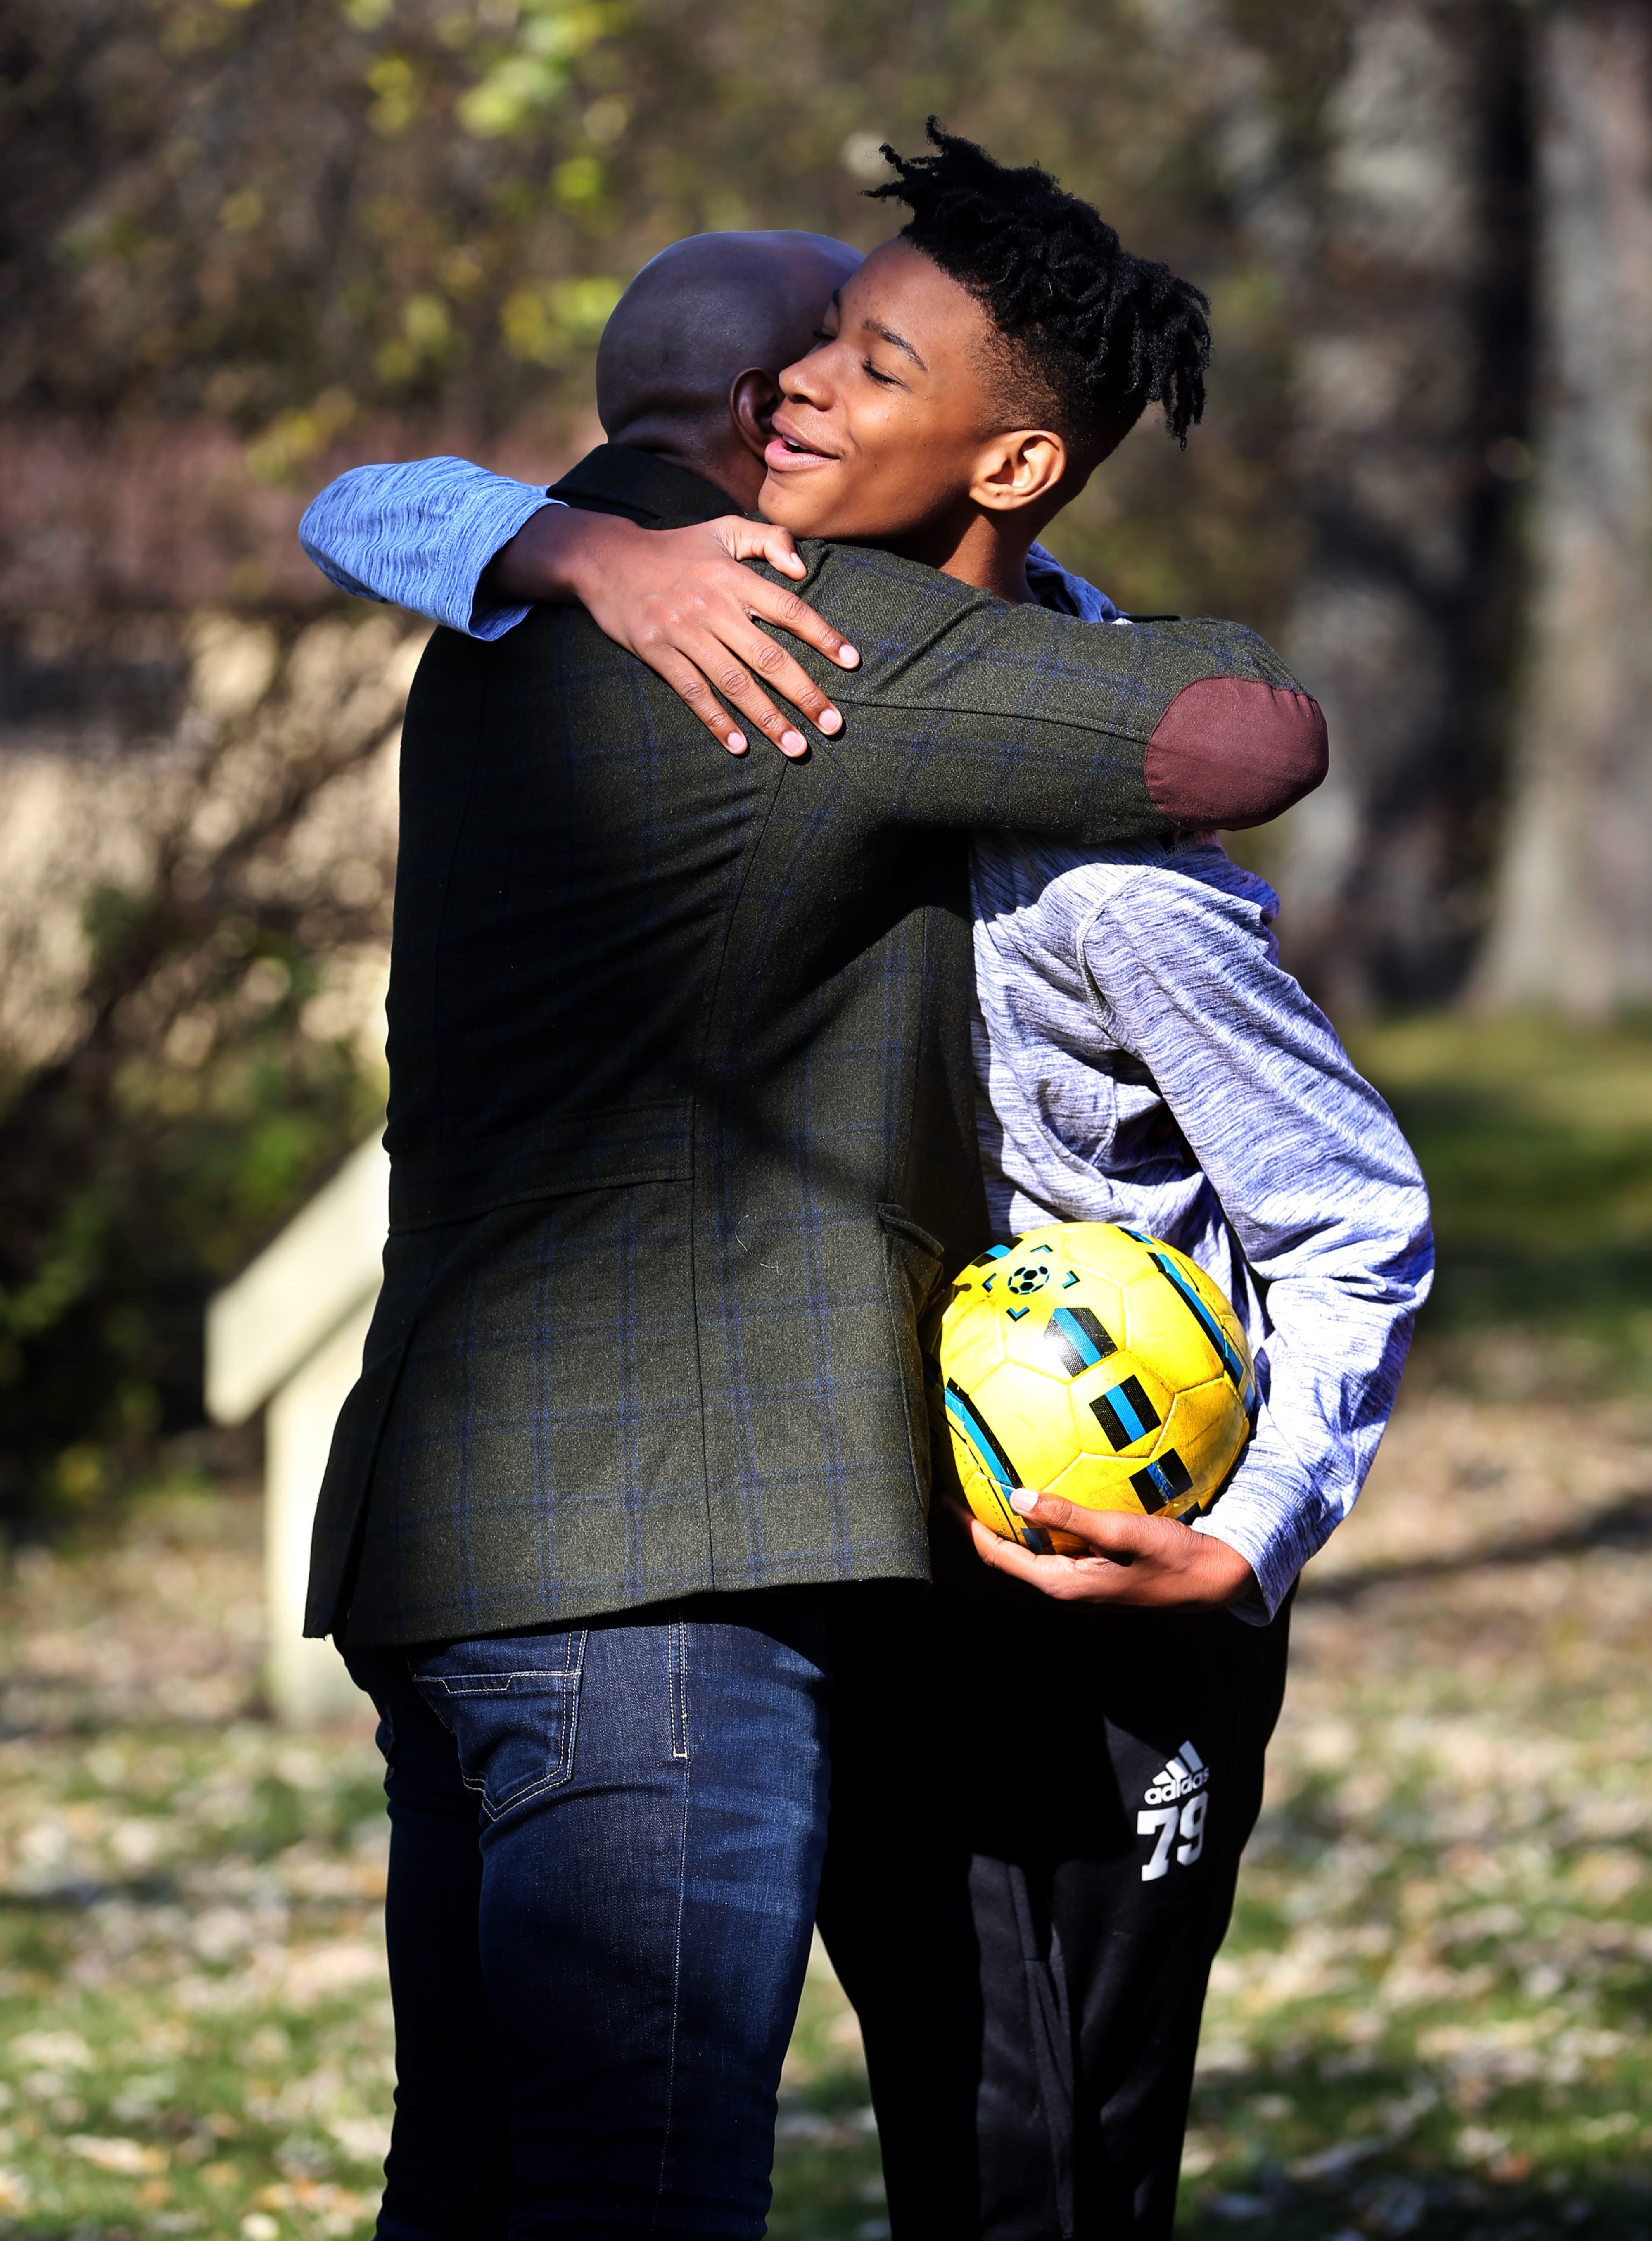 Dillan Burns, 14, hugs his dad Daryl Burns, 46. Daryl Burns, a former principal at Vincent High School, said when it comes to reading, the goal must be to turn kids into lifelong readers.